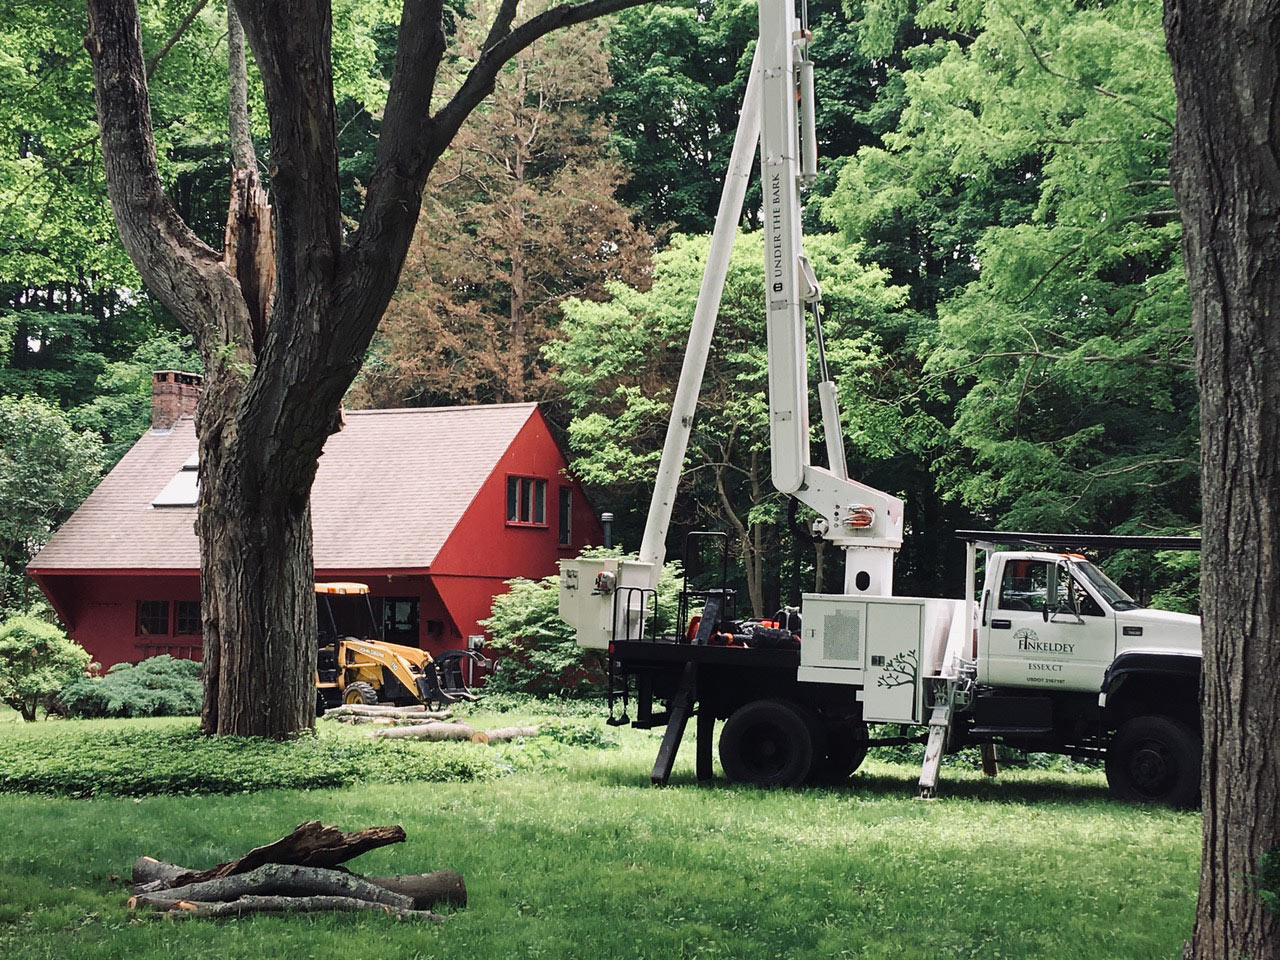 call Under the Bark for tree and stump removal - a division of Finkeldey Tree Services